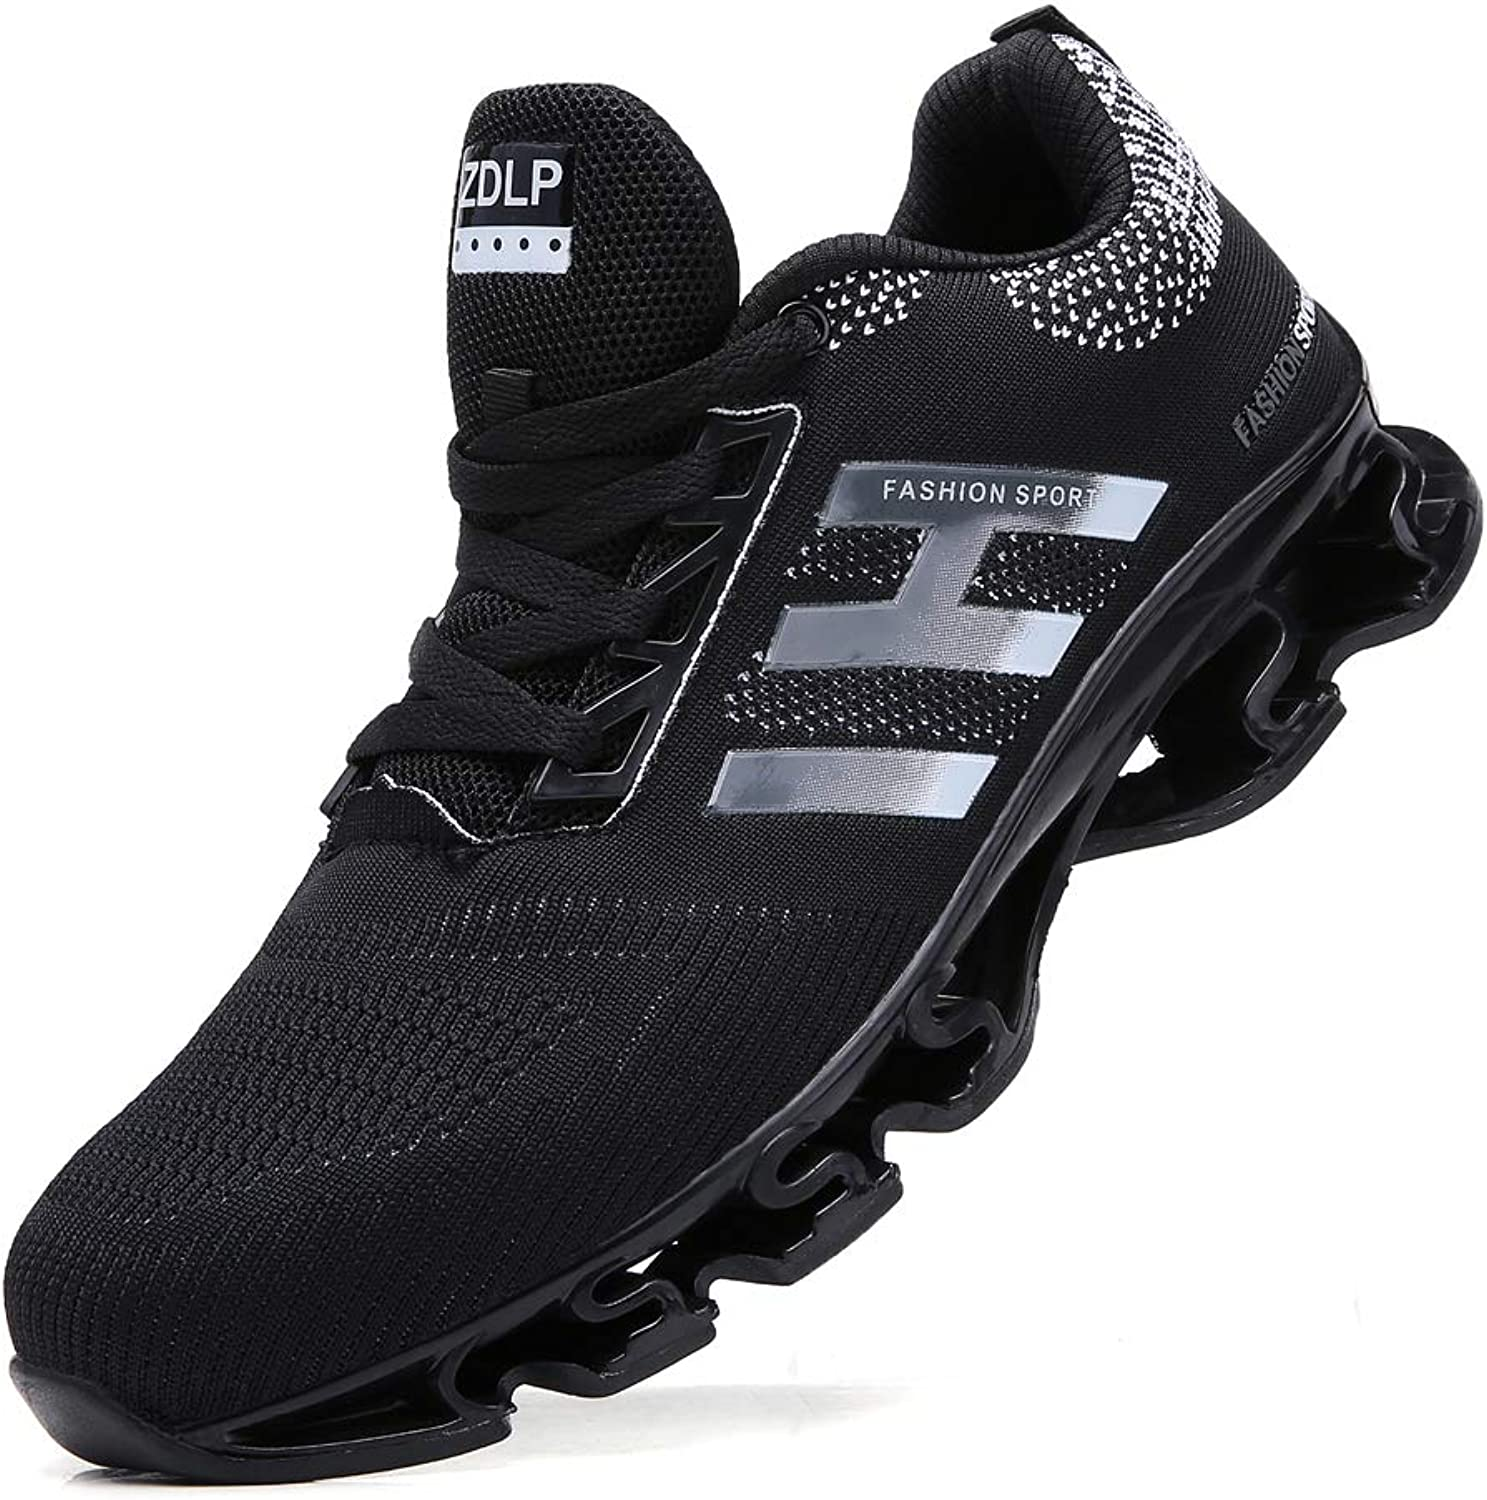 SKDOIUL Jogging shoes for Mens mesh Breathable Slip on Youth Boys Running shoes Casual Walking shoes Black Size 8.5 (656-black-42)